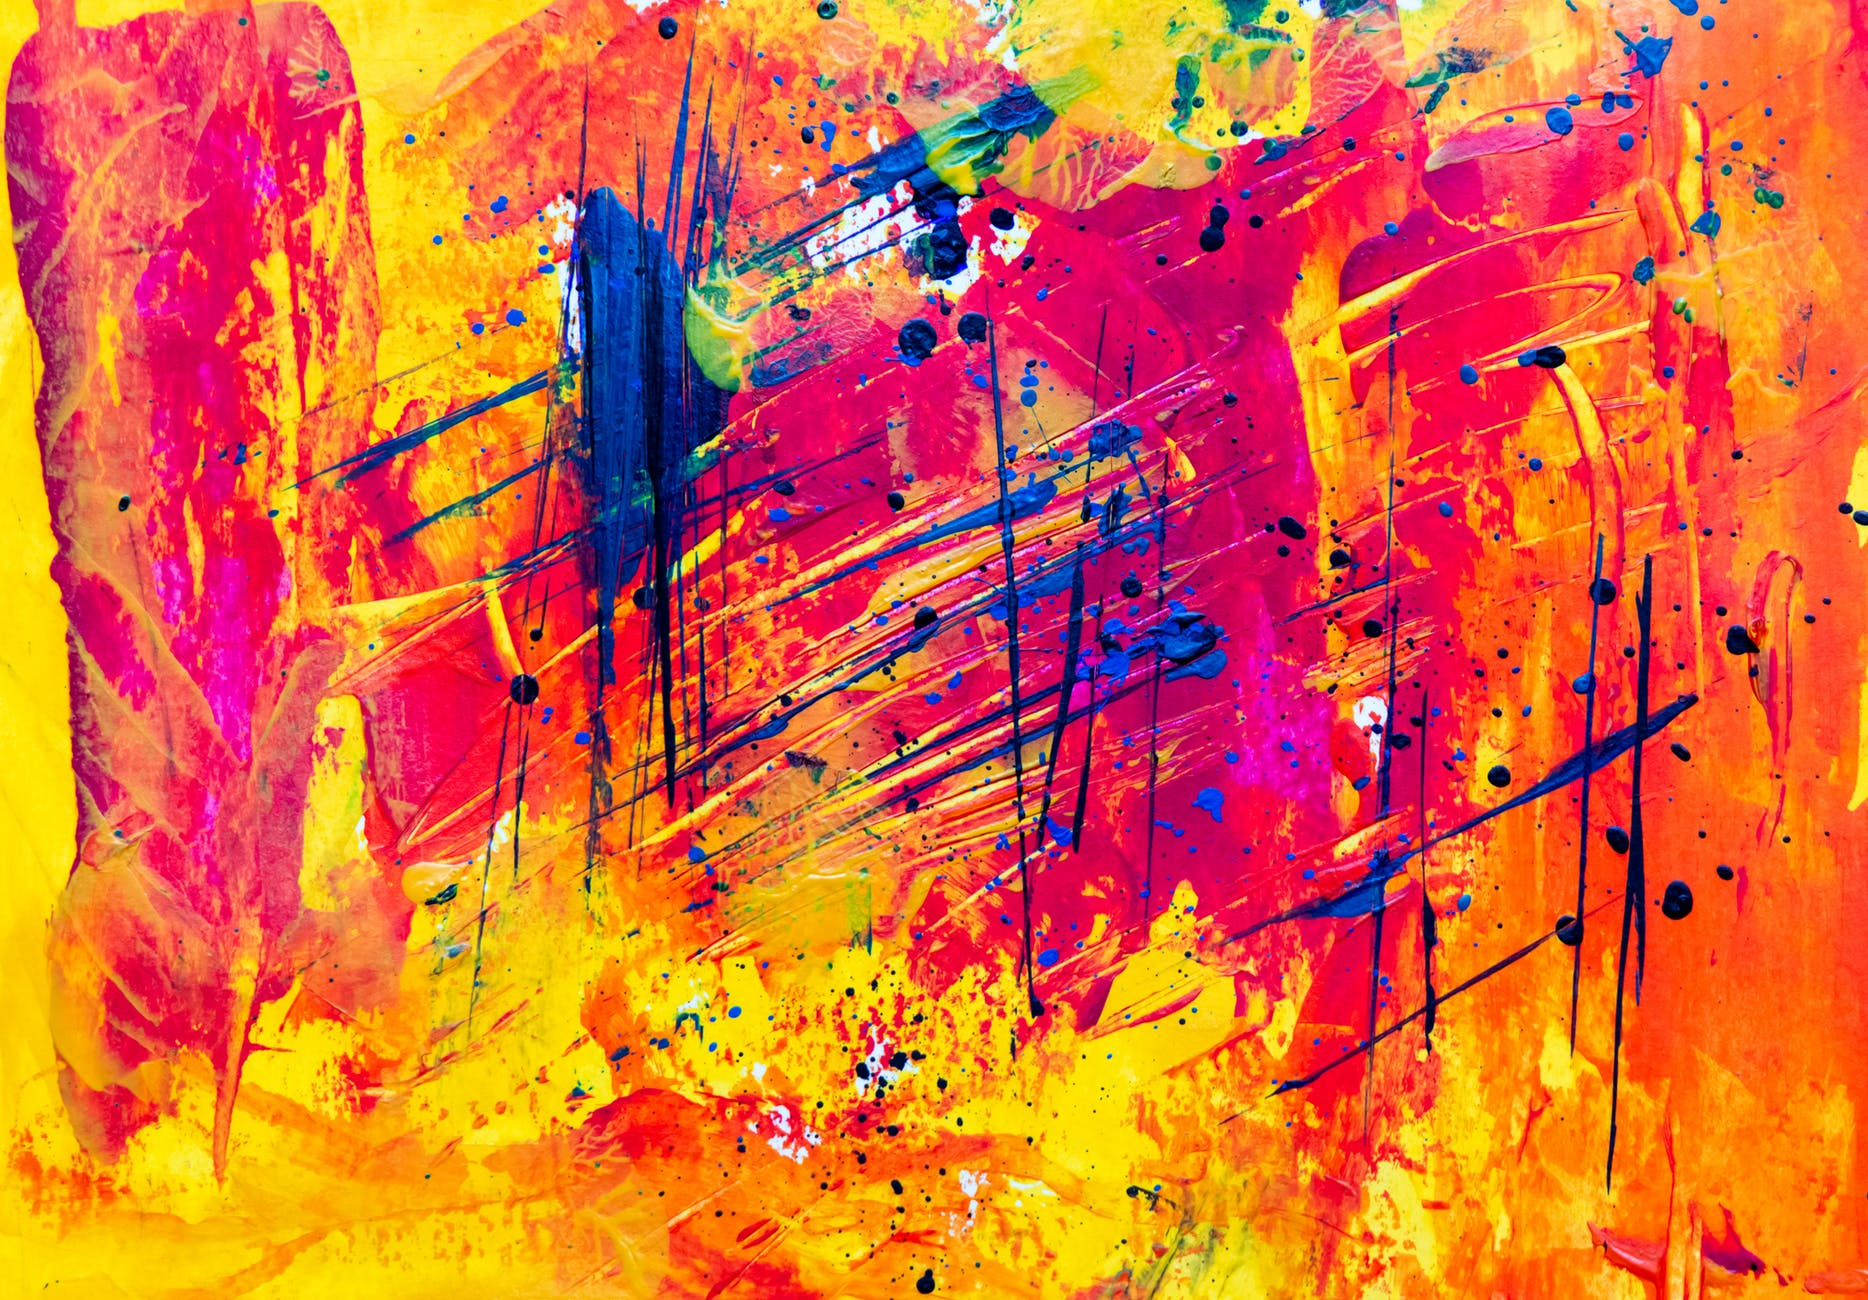 abstract painting yellow red blue